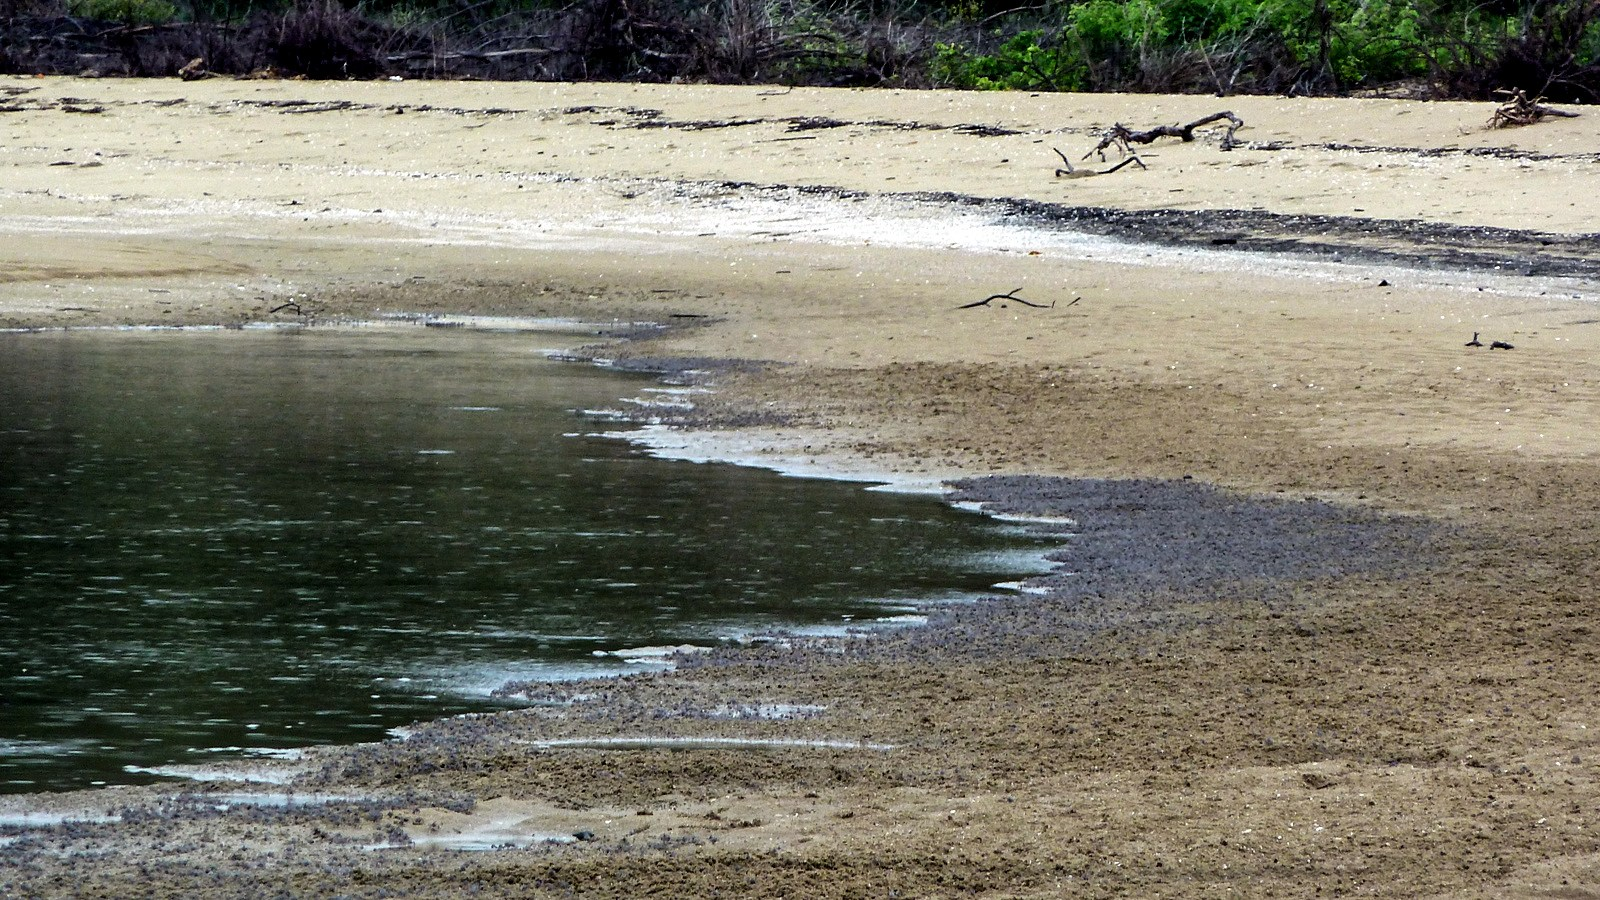 a photo of soldier crabs on the beach of hinchinbrook island.